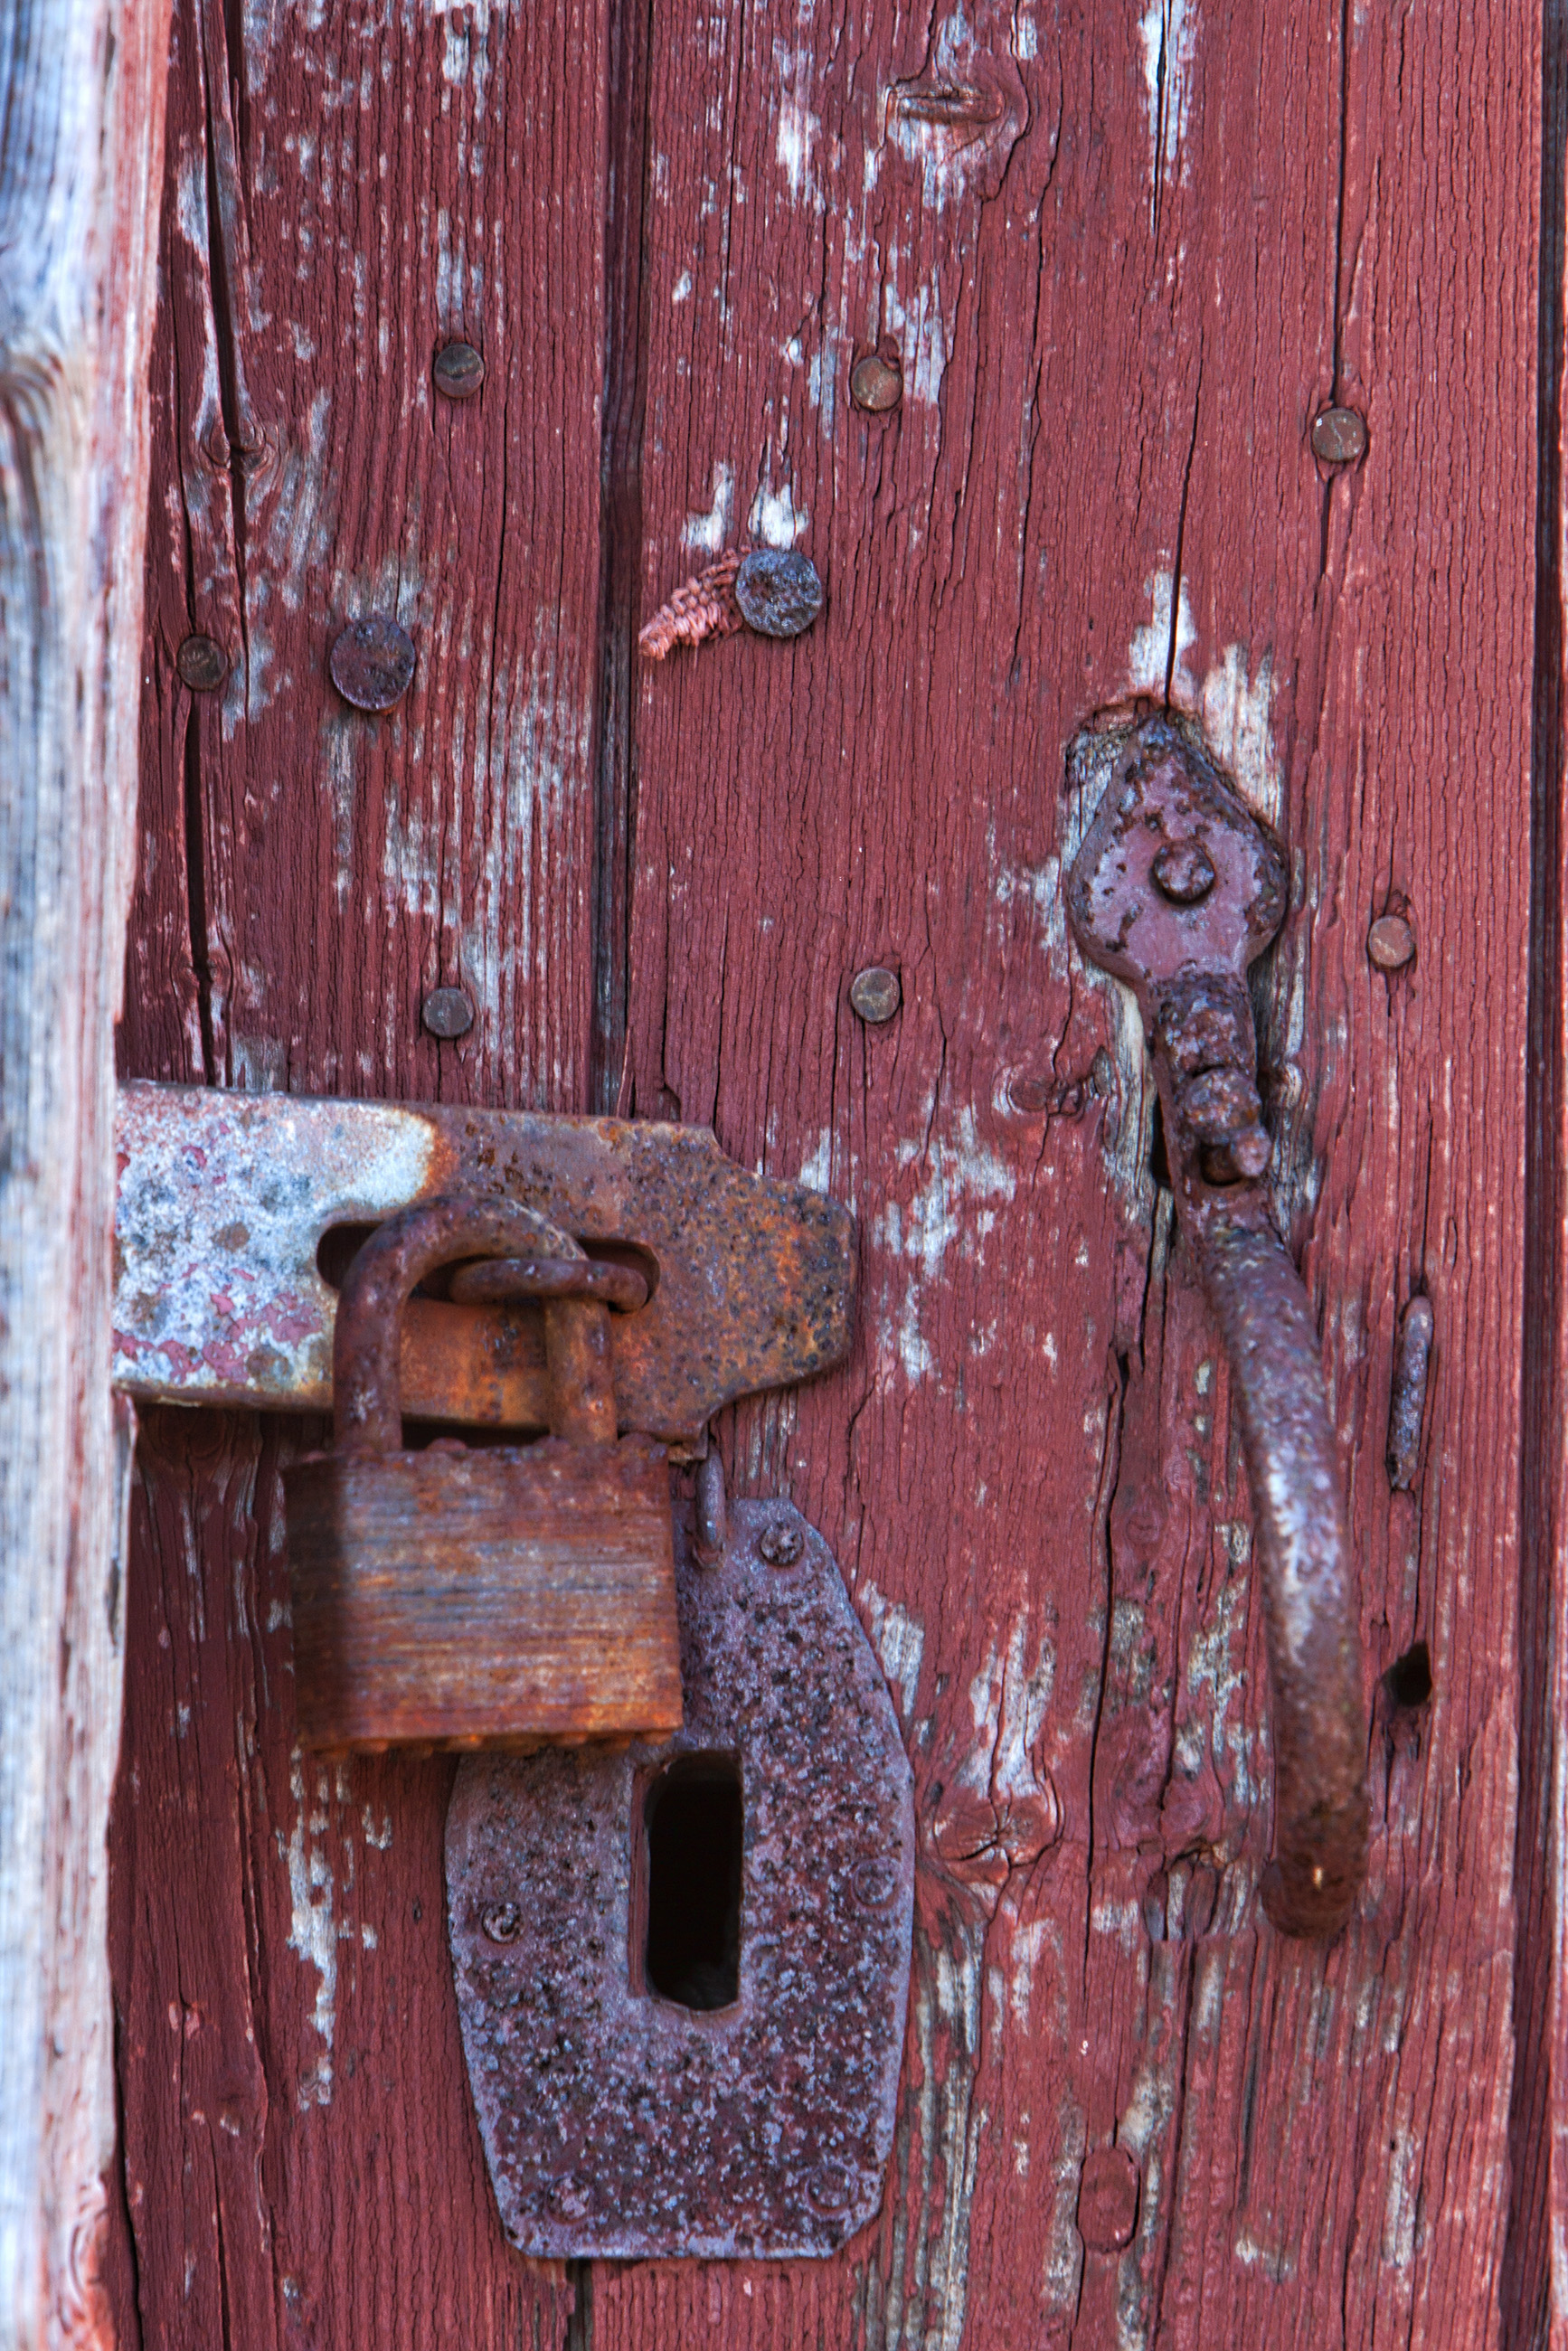 Latch and lock, Antique, Old, Padlock, Protection, HQ Photo